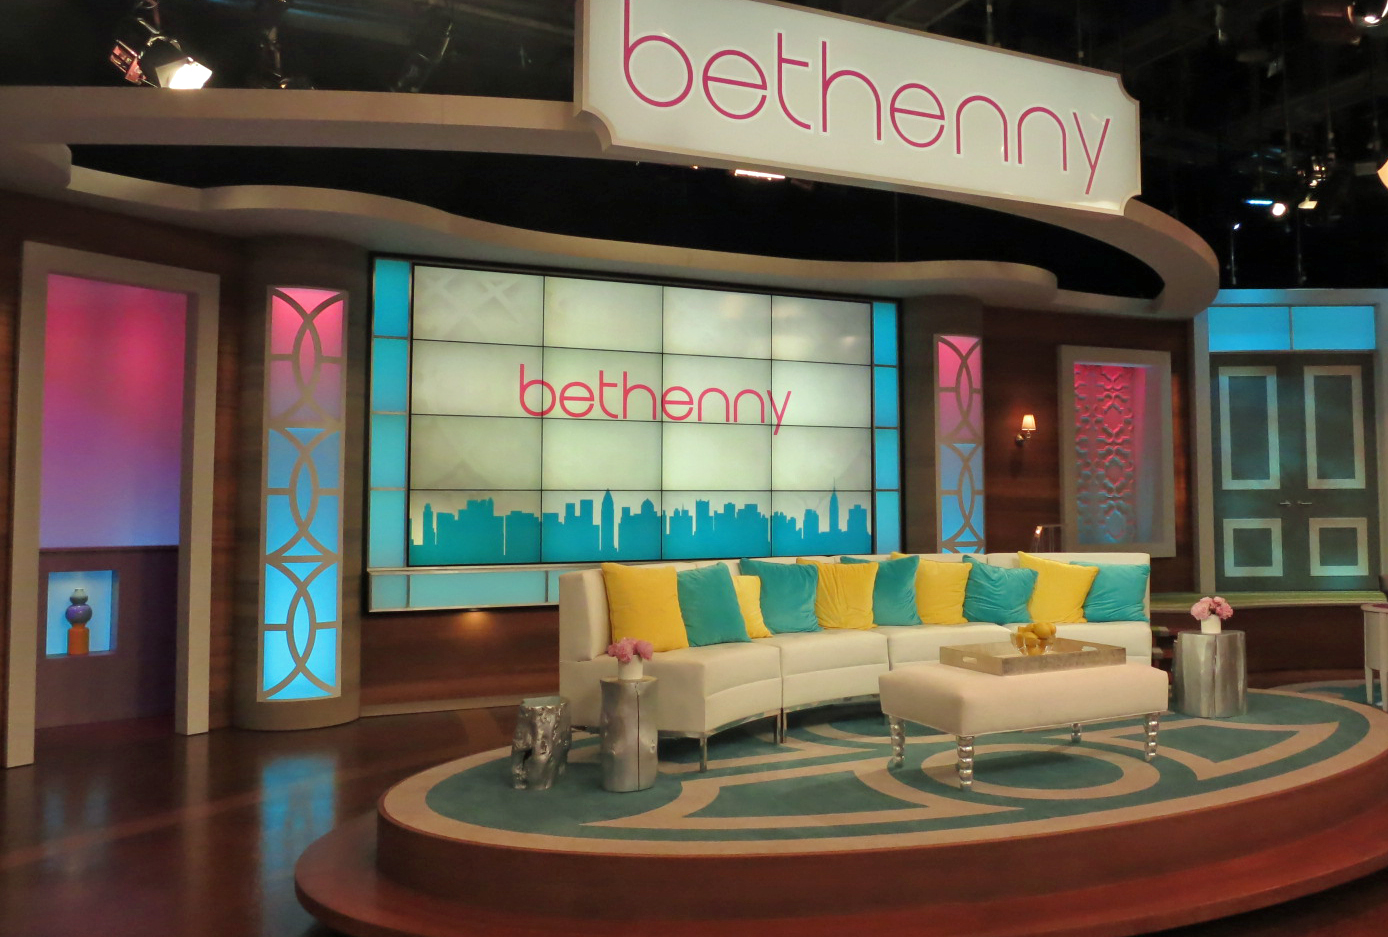 tv-lighting-design-bethenny-1